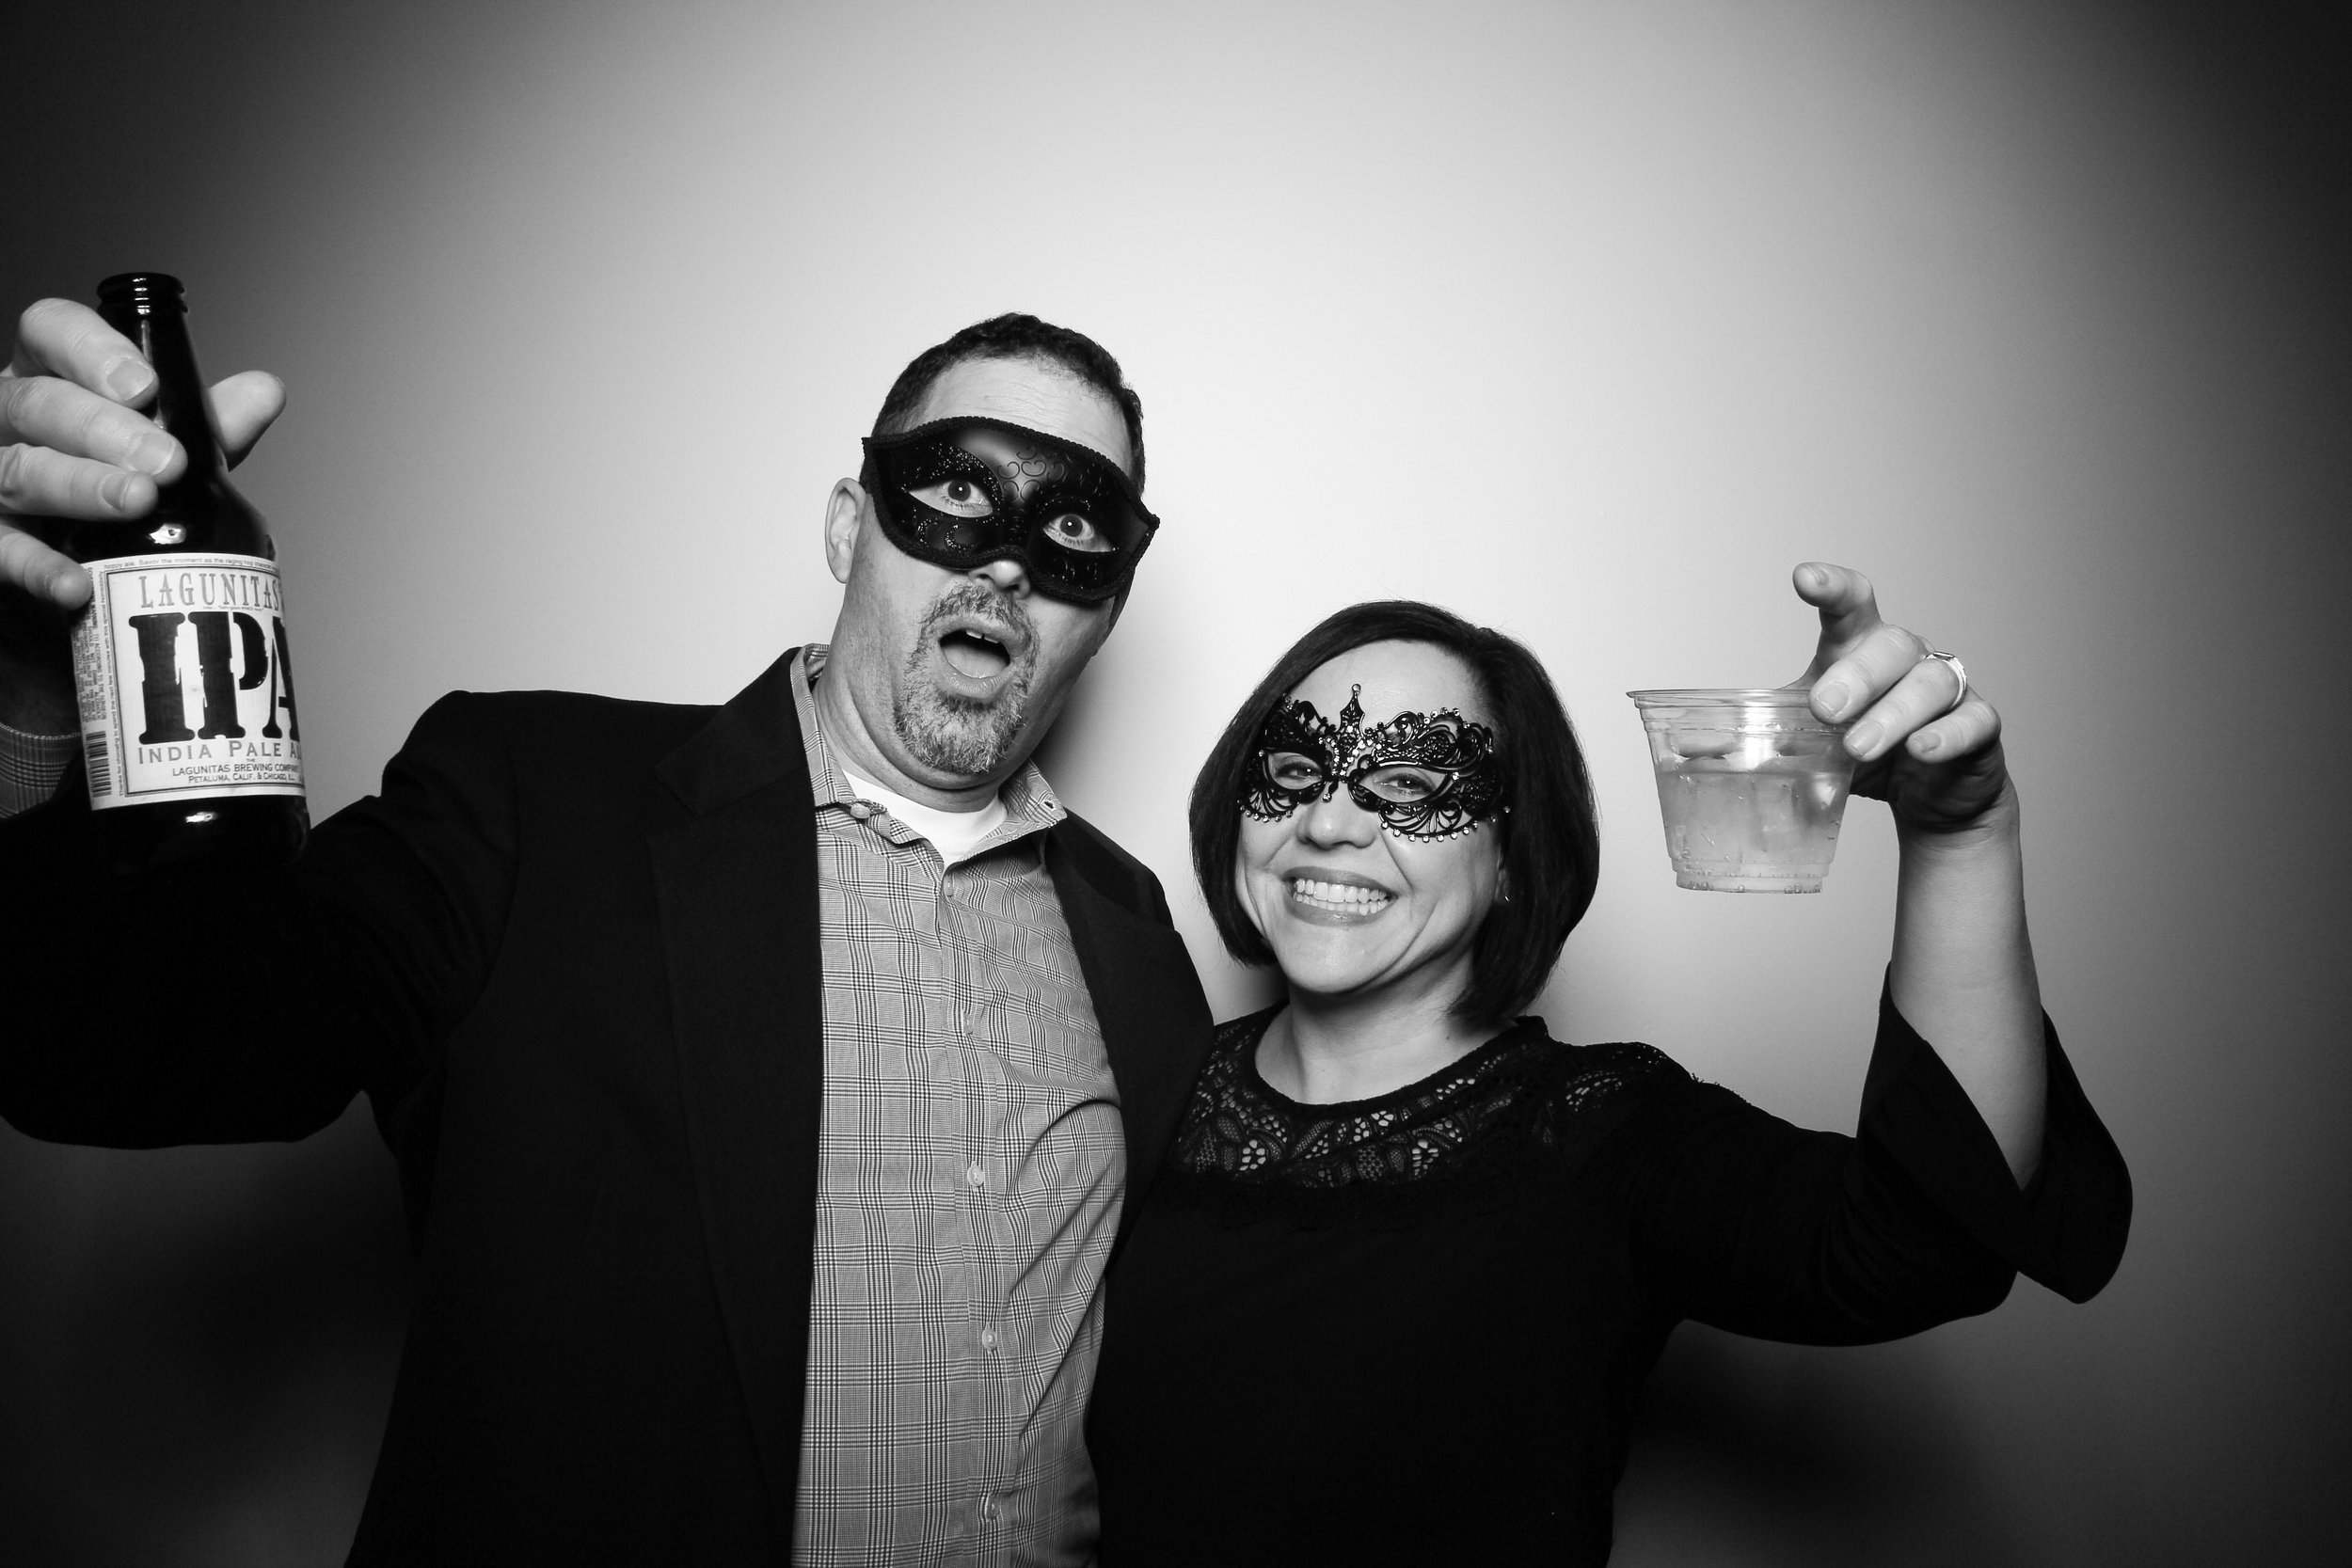 Chicago_Vintage_Photobooth_Solstice_Company_Holiday_Party_11.jpg